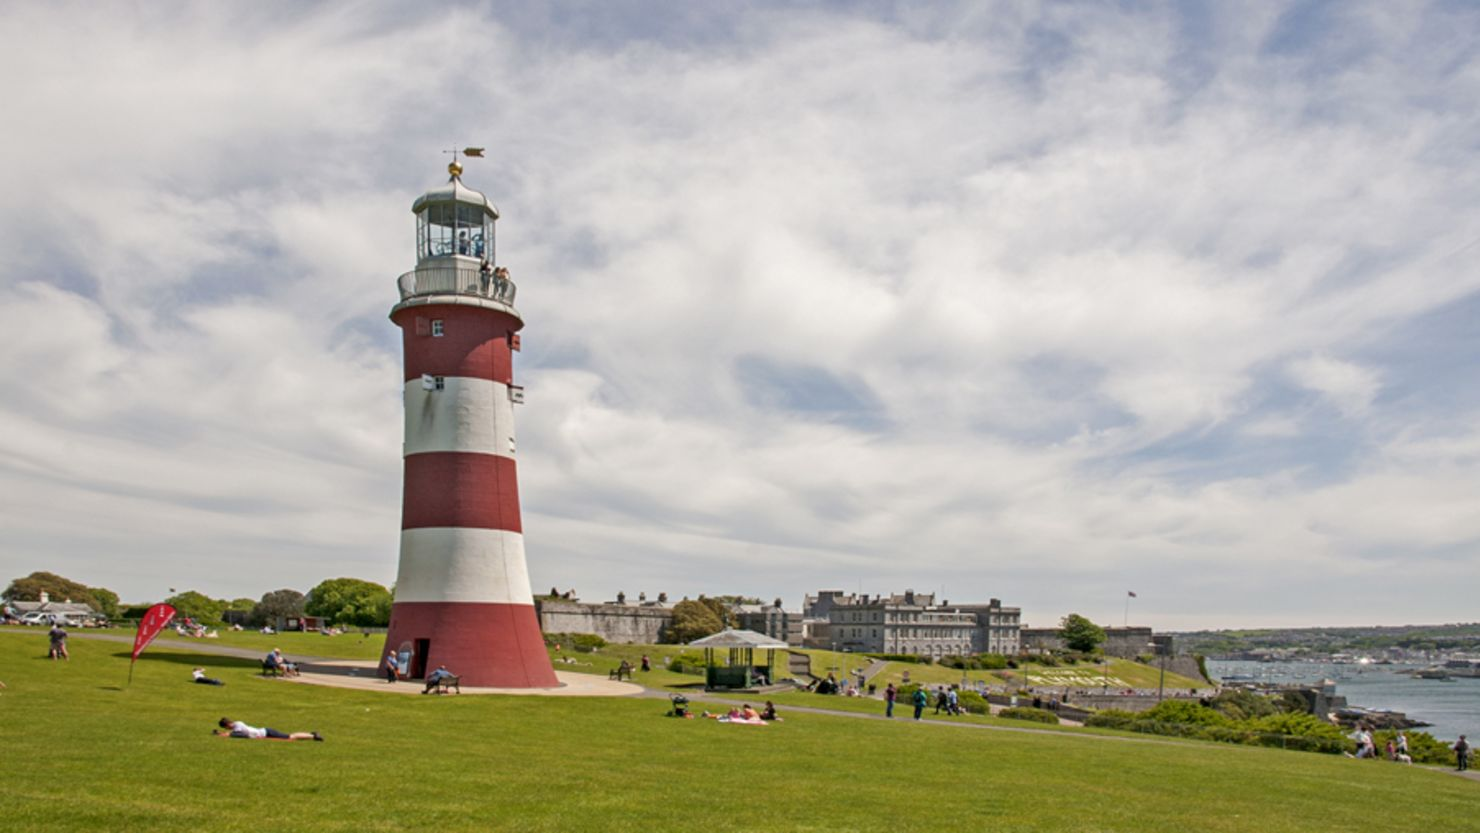 Smeaton's Tower lighthouse on the Hoe